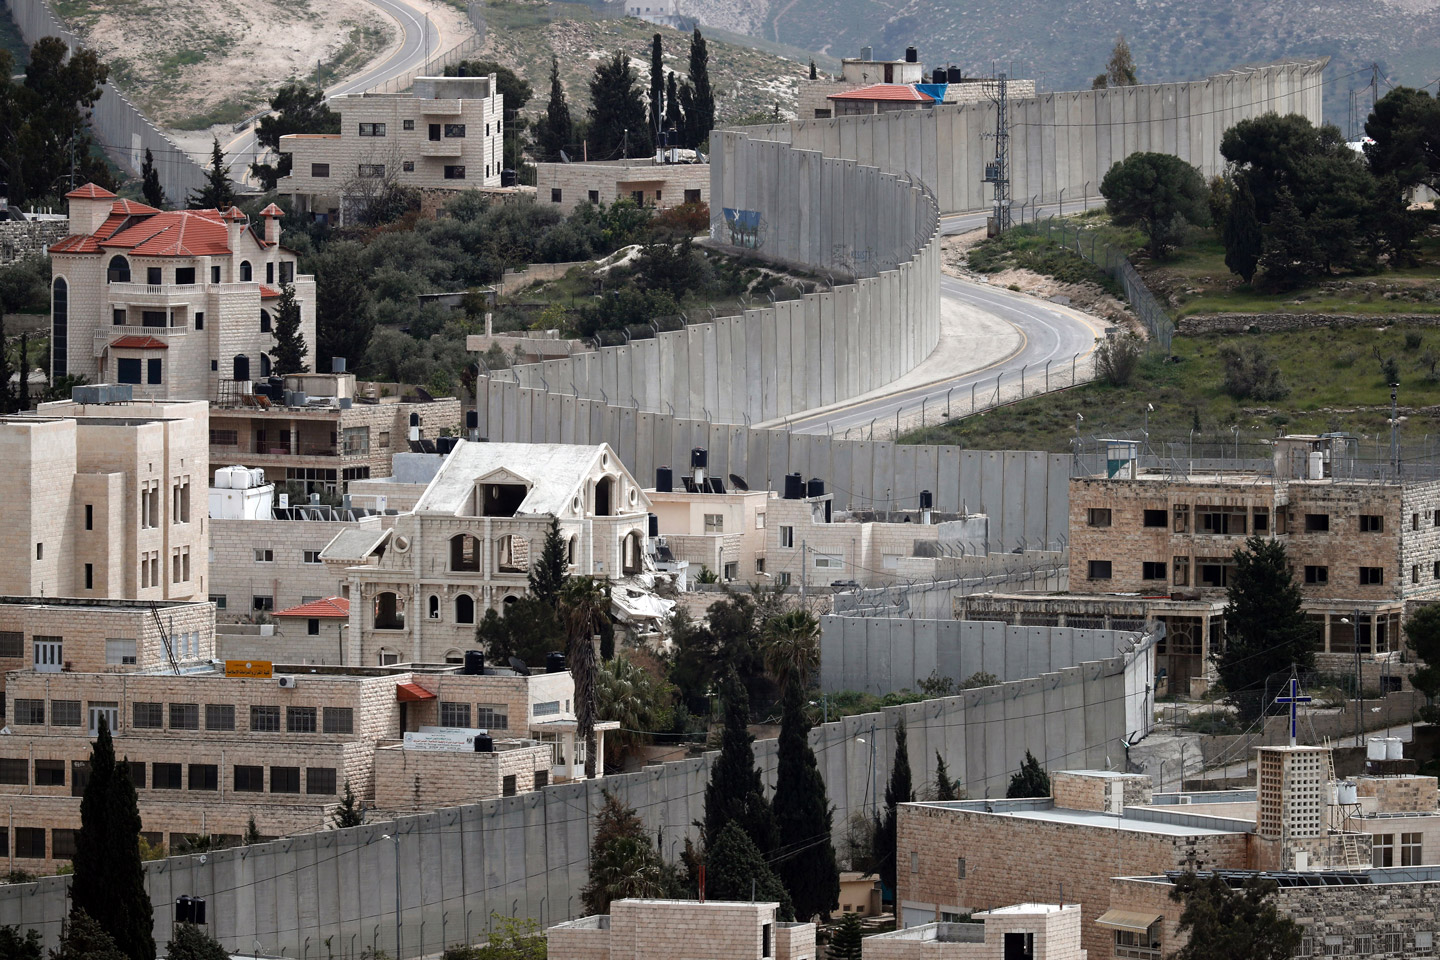 A general view show Israel's controversial separation barrier dividing the West Bank city of Abu Dis (L) and the Israeli annexed East Jerusalem on March 24, 2016. / AFP / THOMAS COEX        (Photo credit should read THOMAS COEX/AFP/Getty Images)